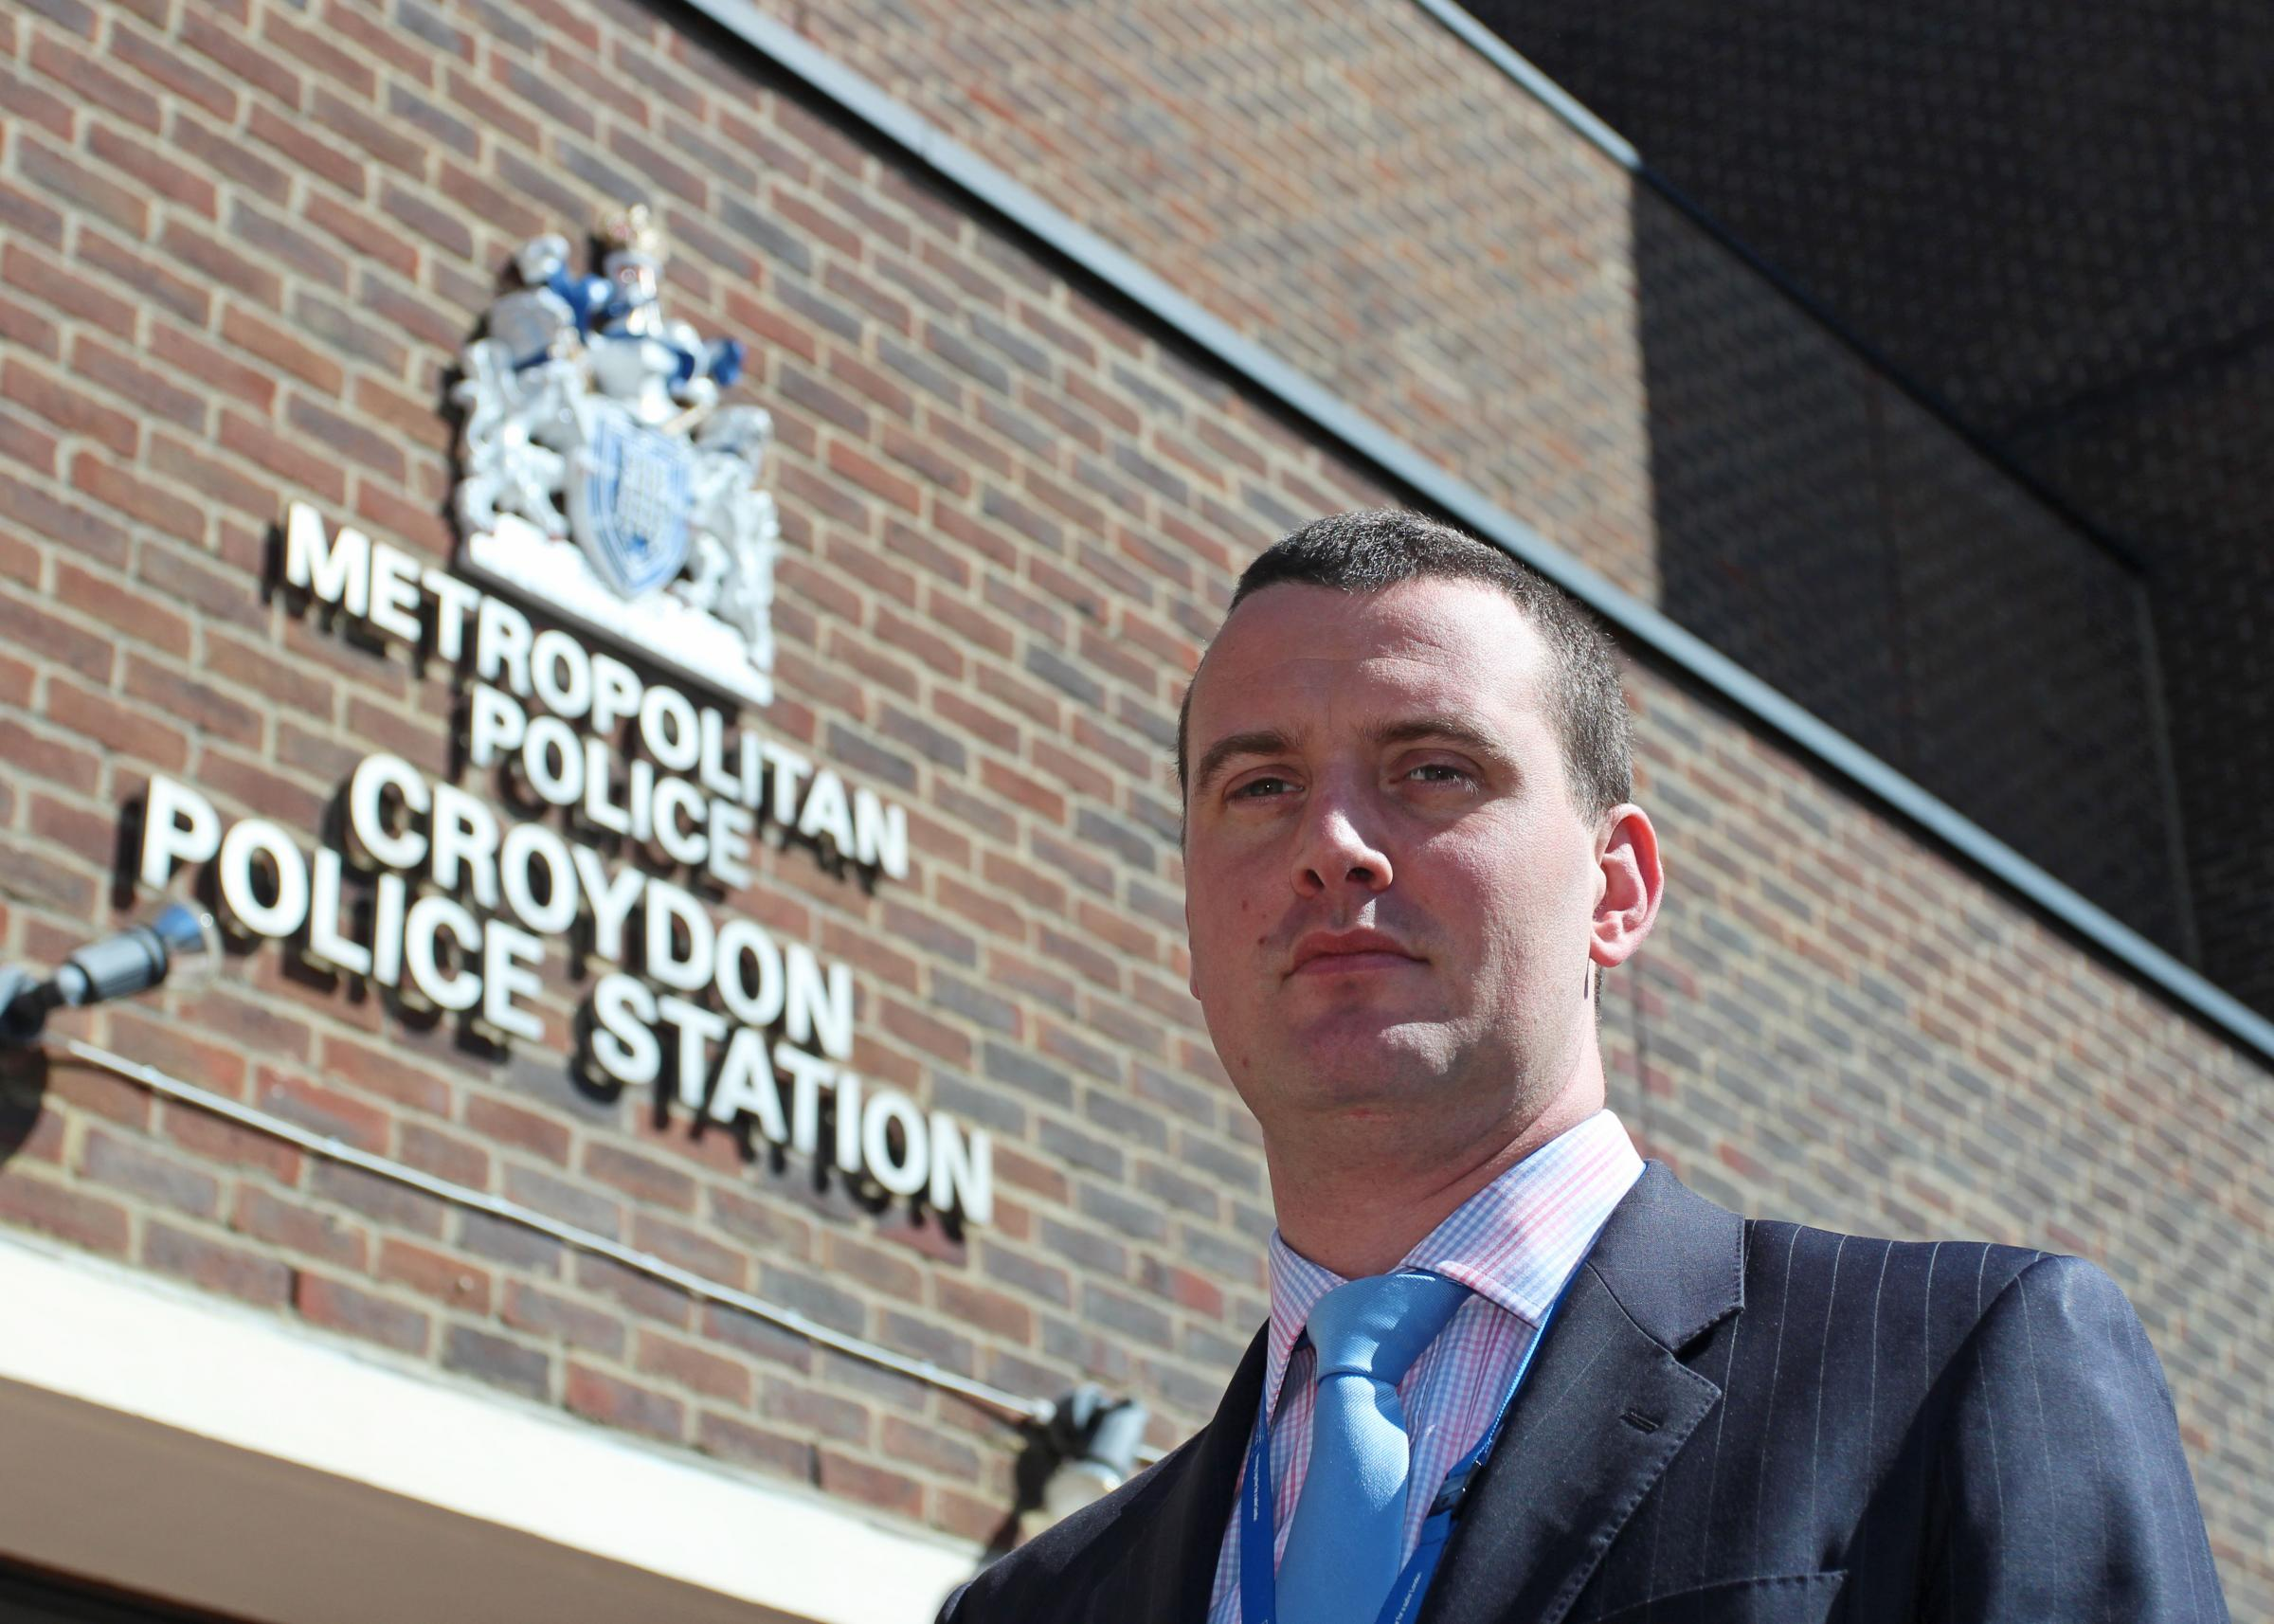 Detective Superintendent Simon Messinger said 150 arrests were made last year for offensive weapons or firearms offences